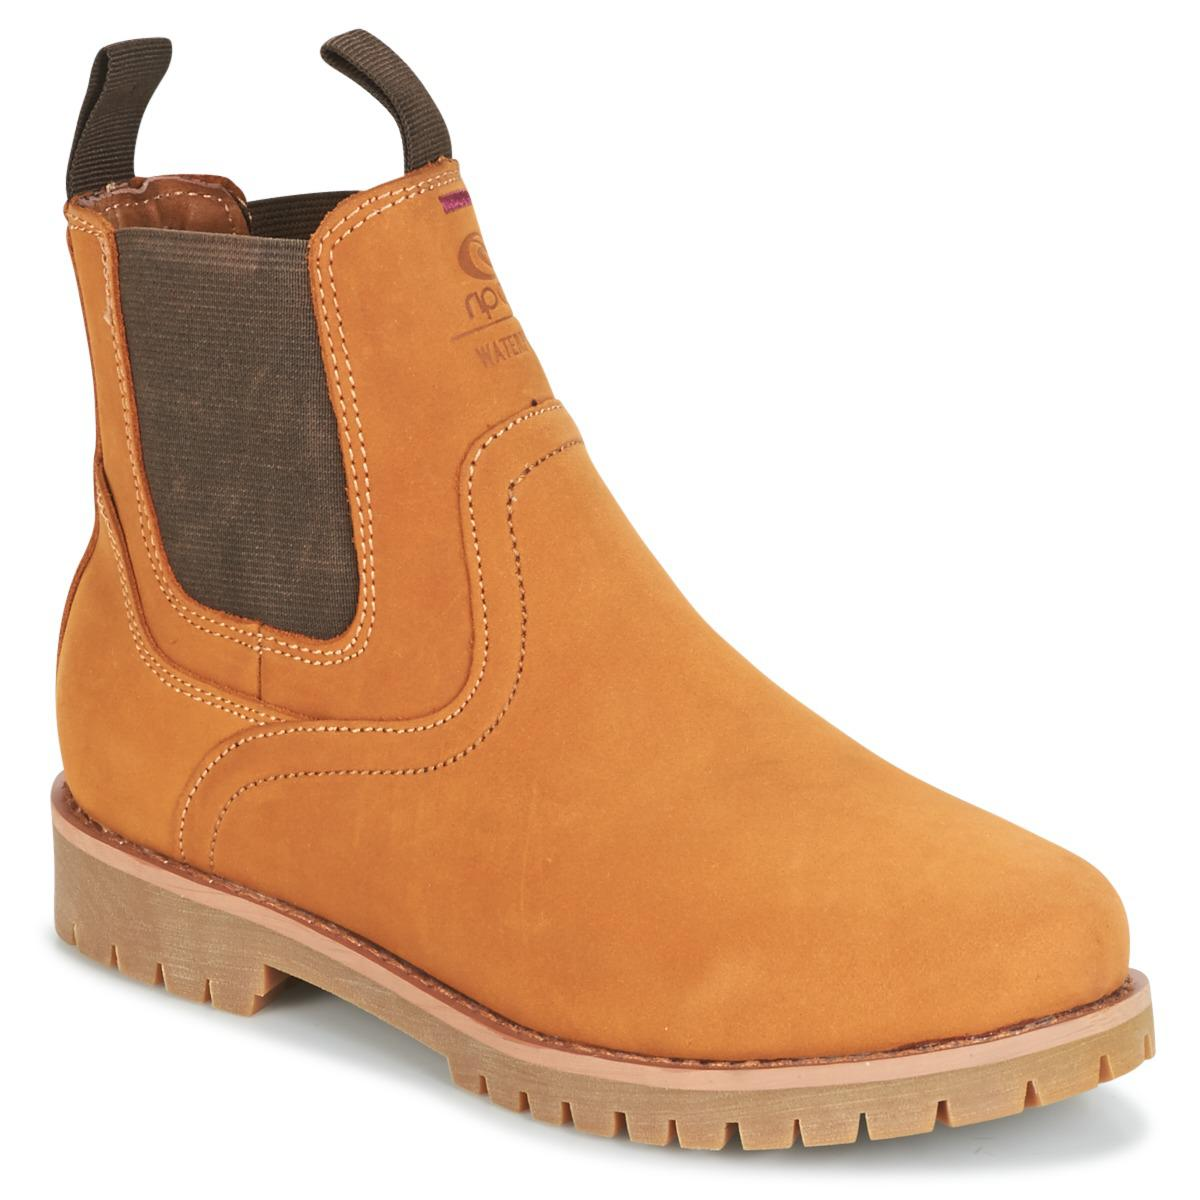 Rip Curl 003 W women's Mid Boots in Outlet Fast Delivery bRowjq